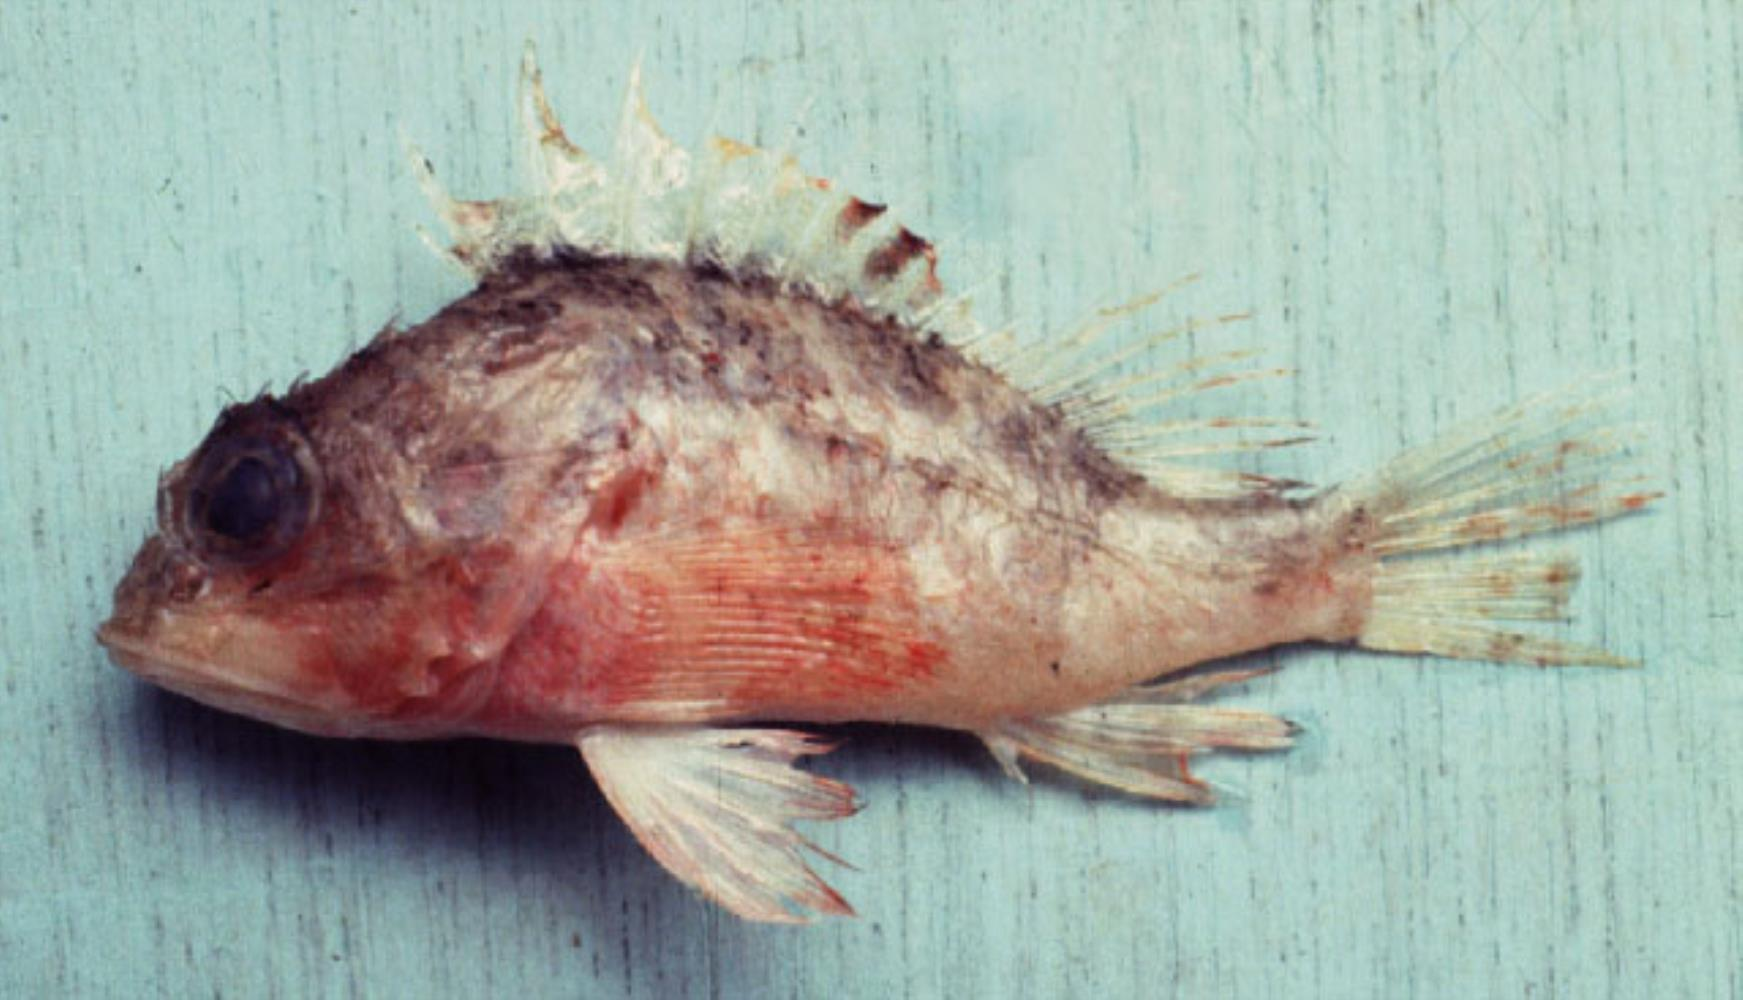 Curvedspine Scorpionfish